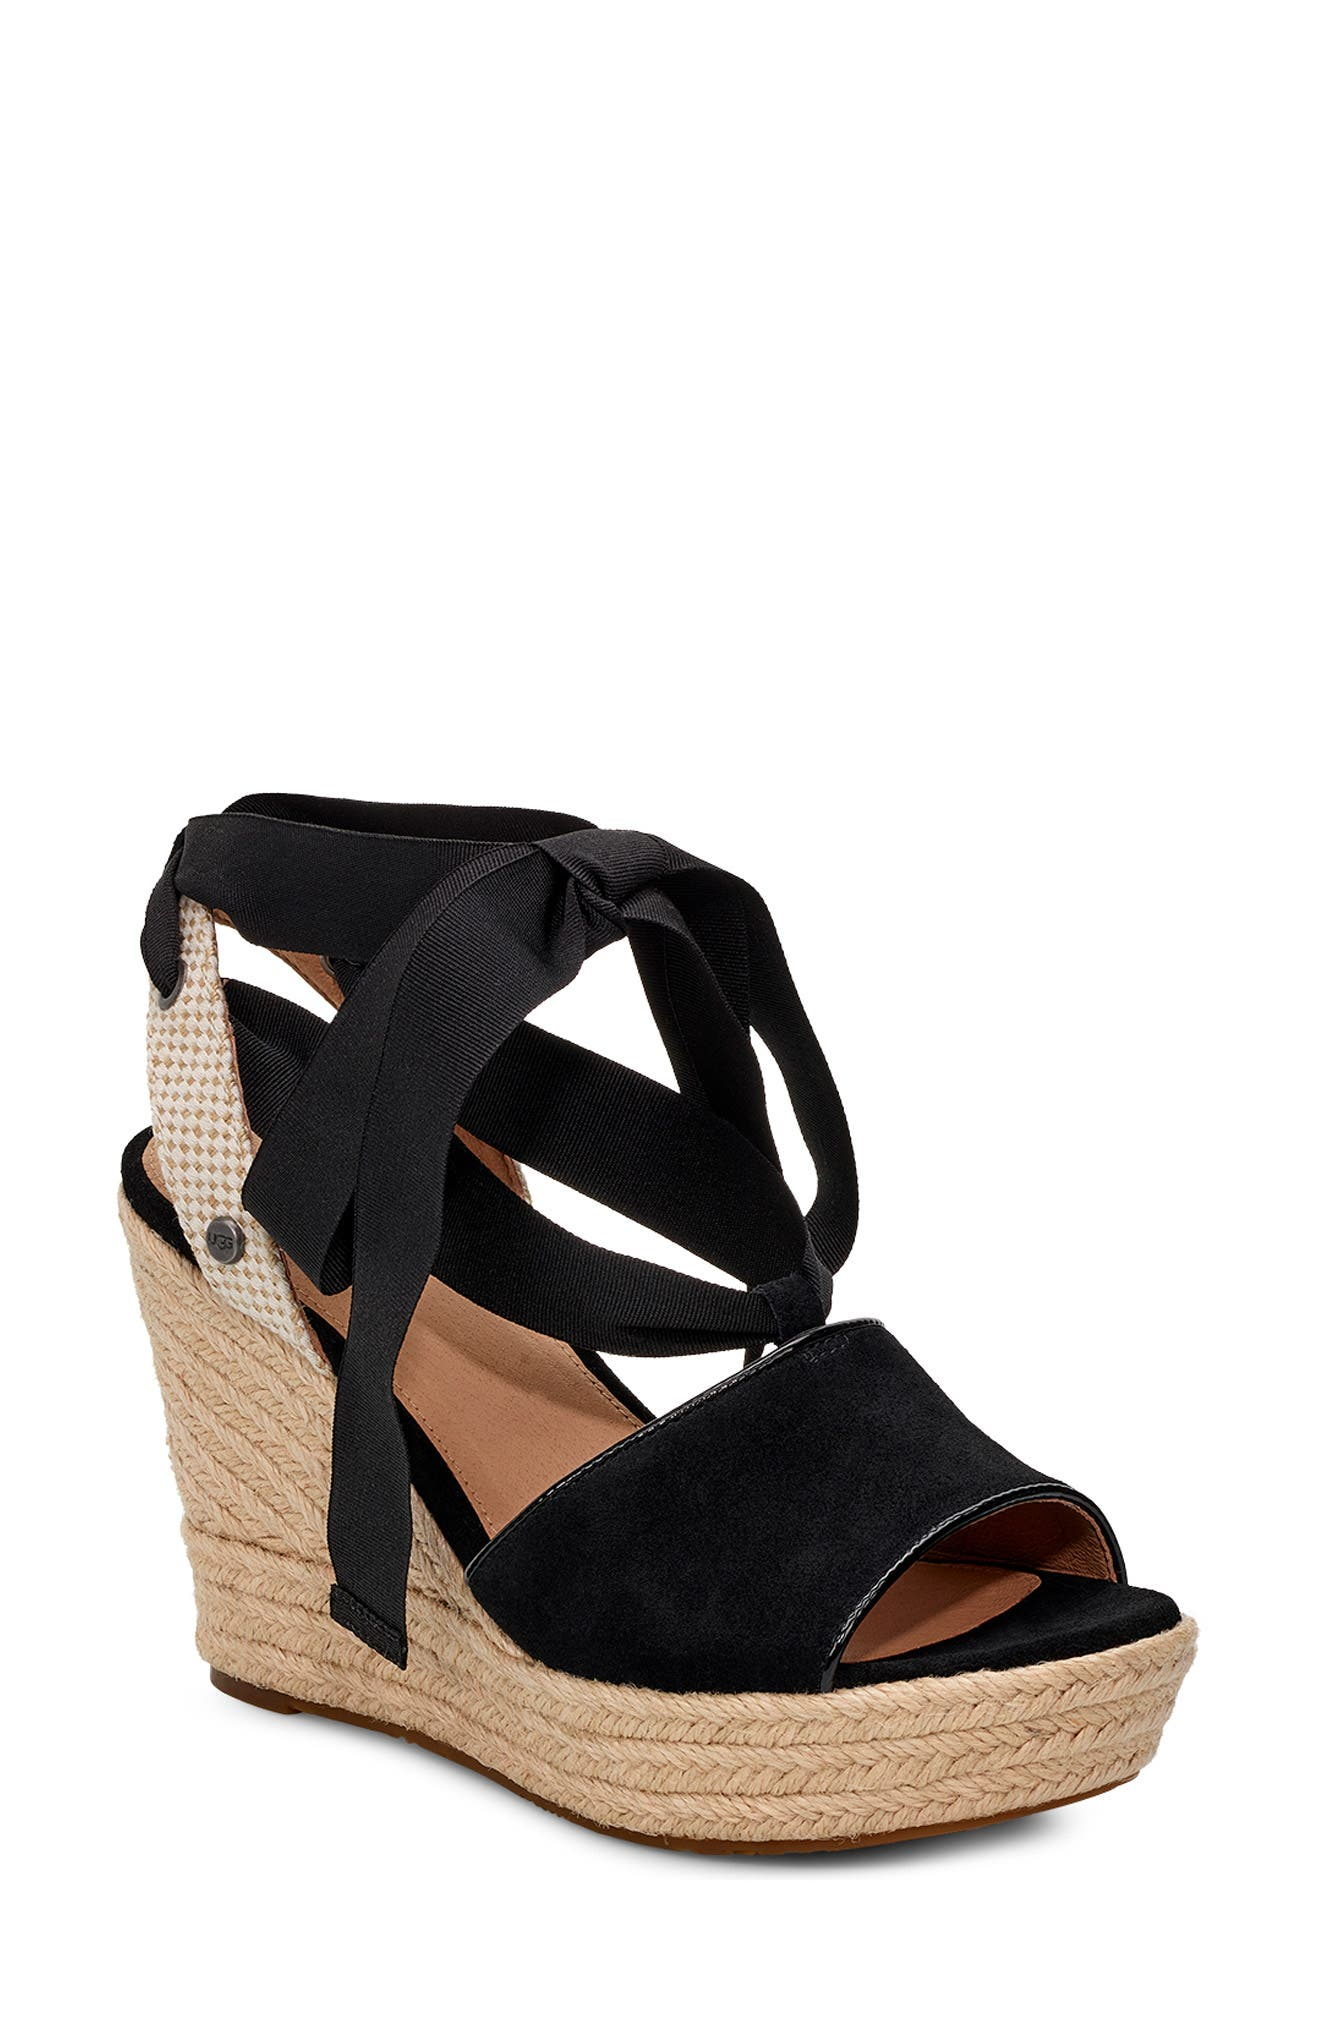 UGG<SUP>®</SUP> Shiloh Wedge Sandal, Main, color, BLACK FABRIC